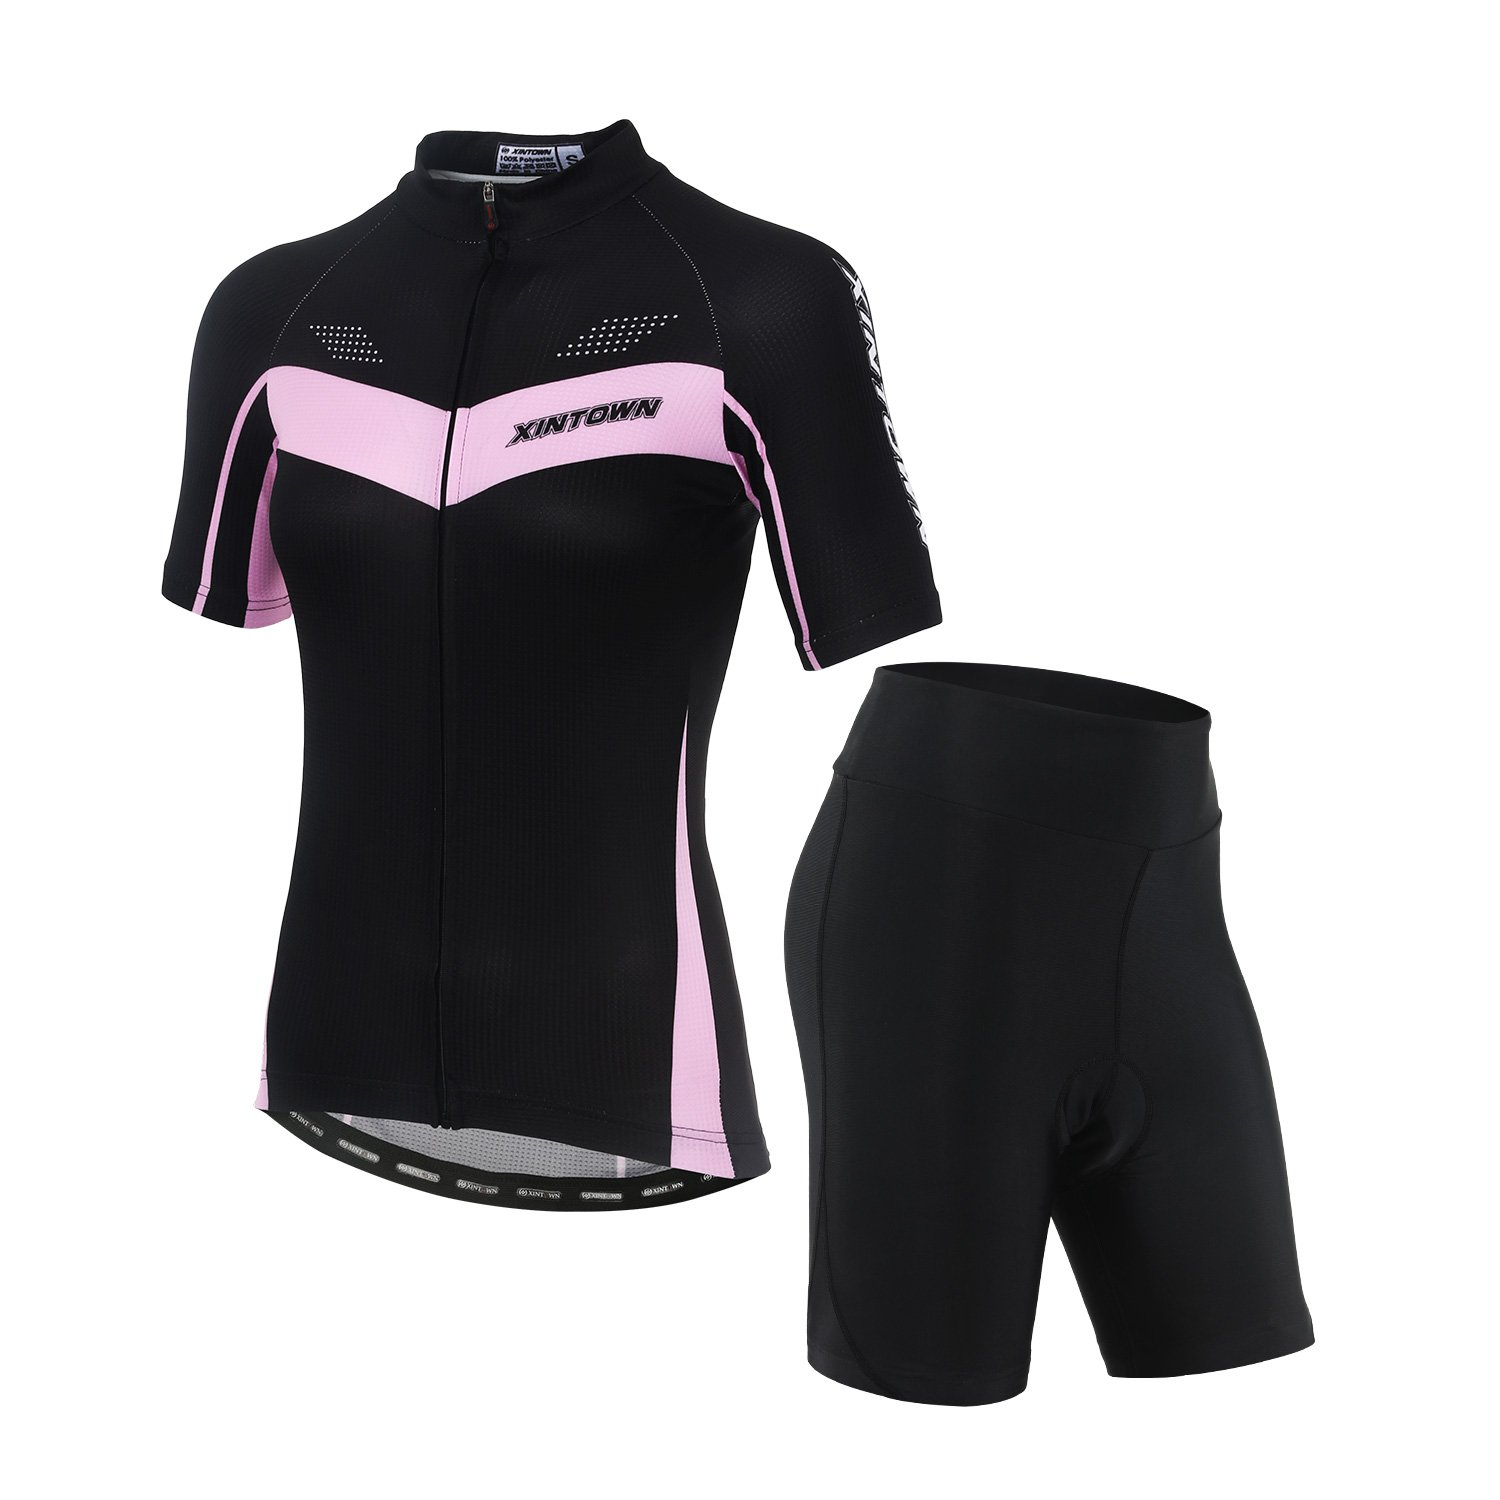 DuShow Women's Short Sleeve Cycling Jersey/Bicycle Top and 3D Padded Shorts Set (M, Pink) by DuShow